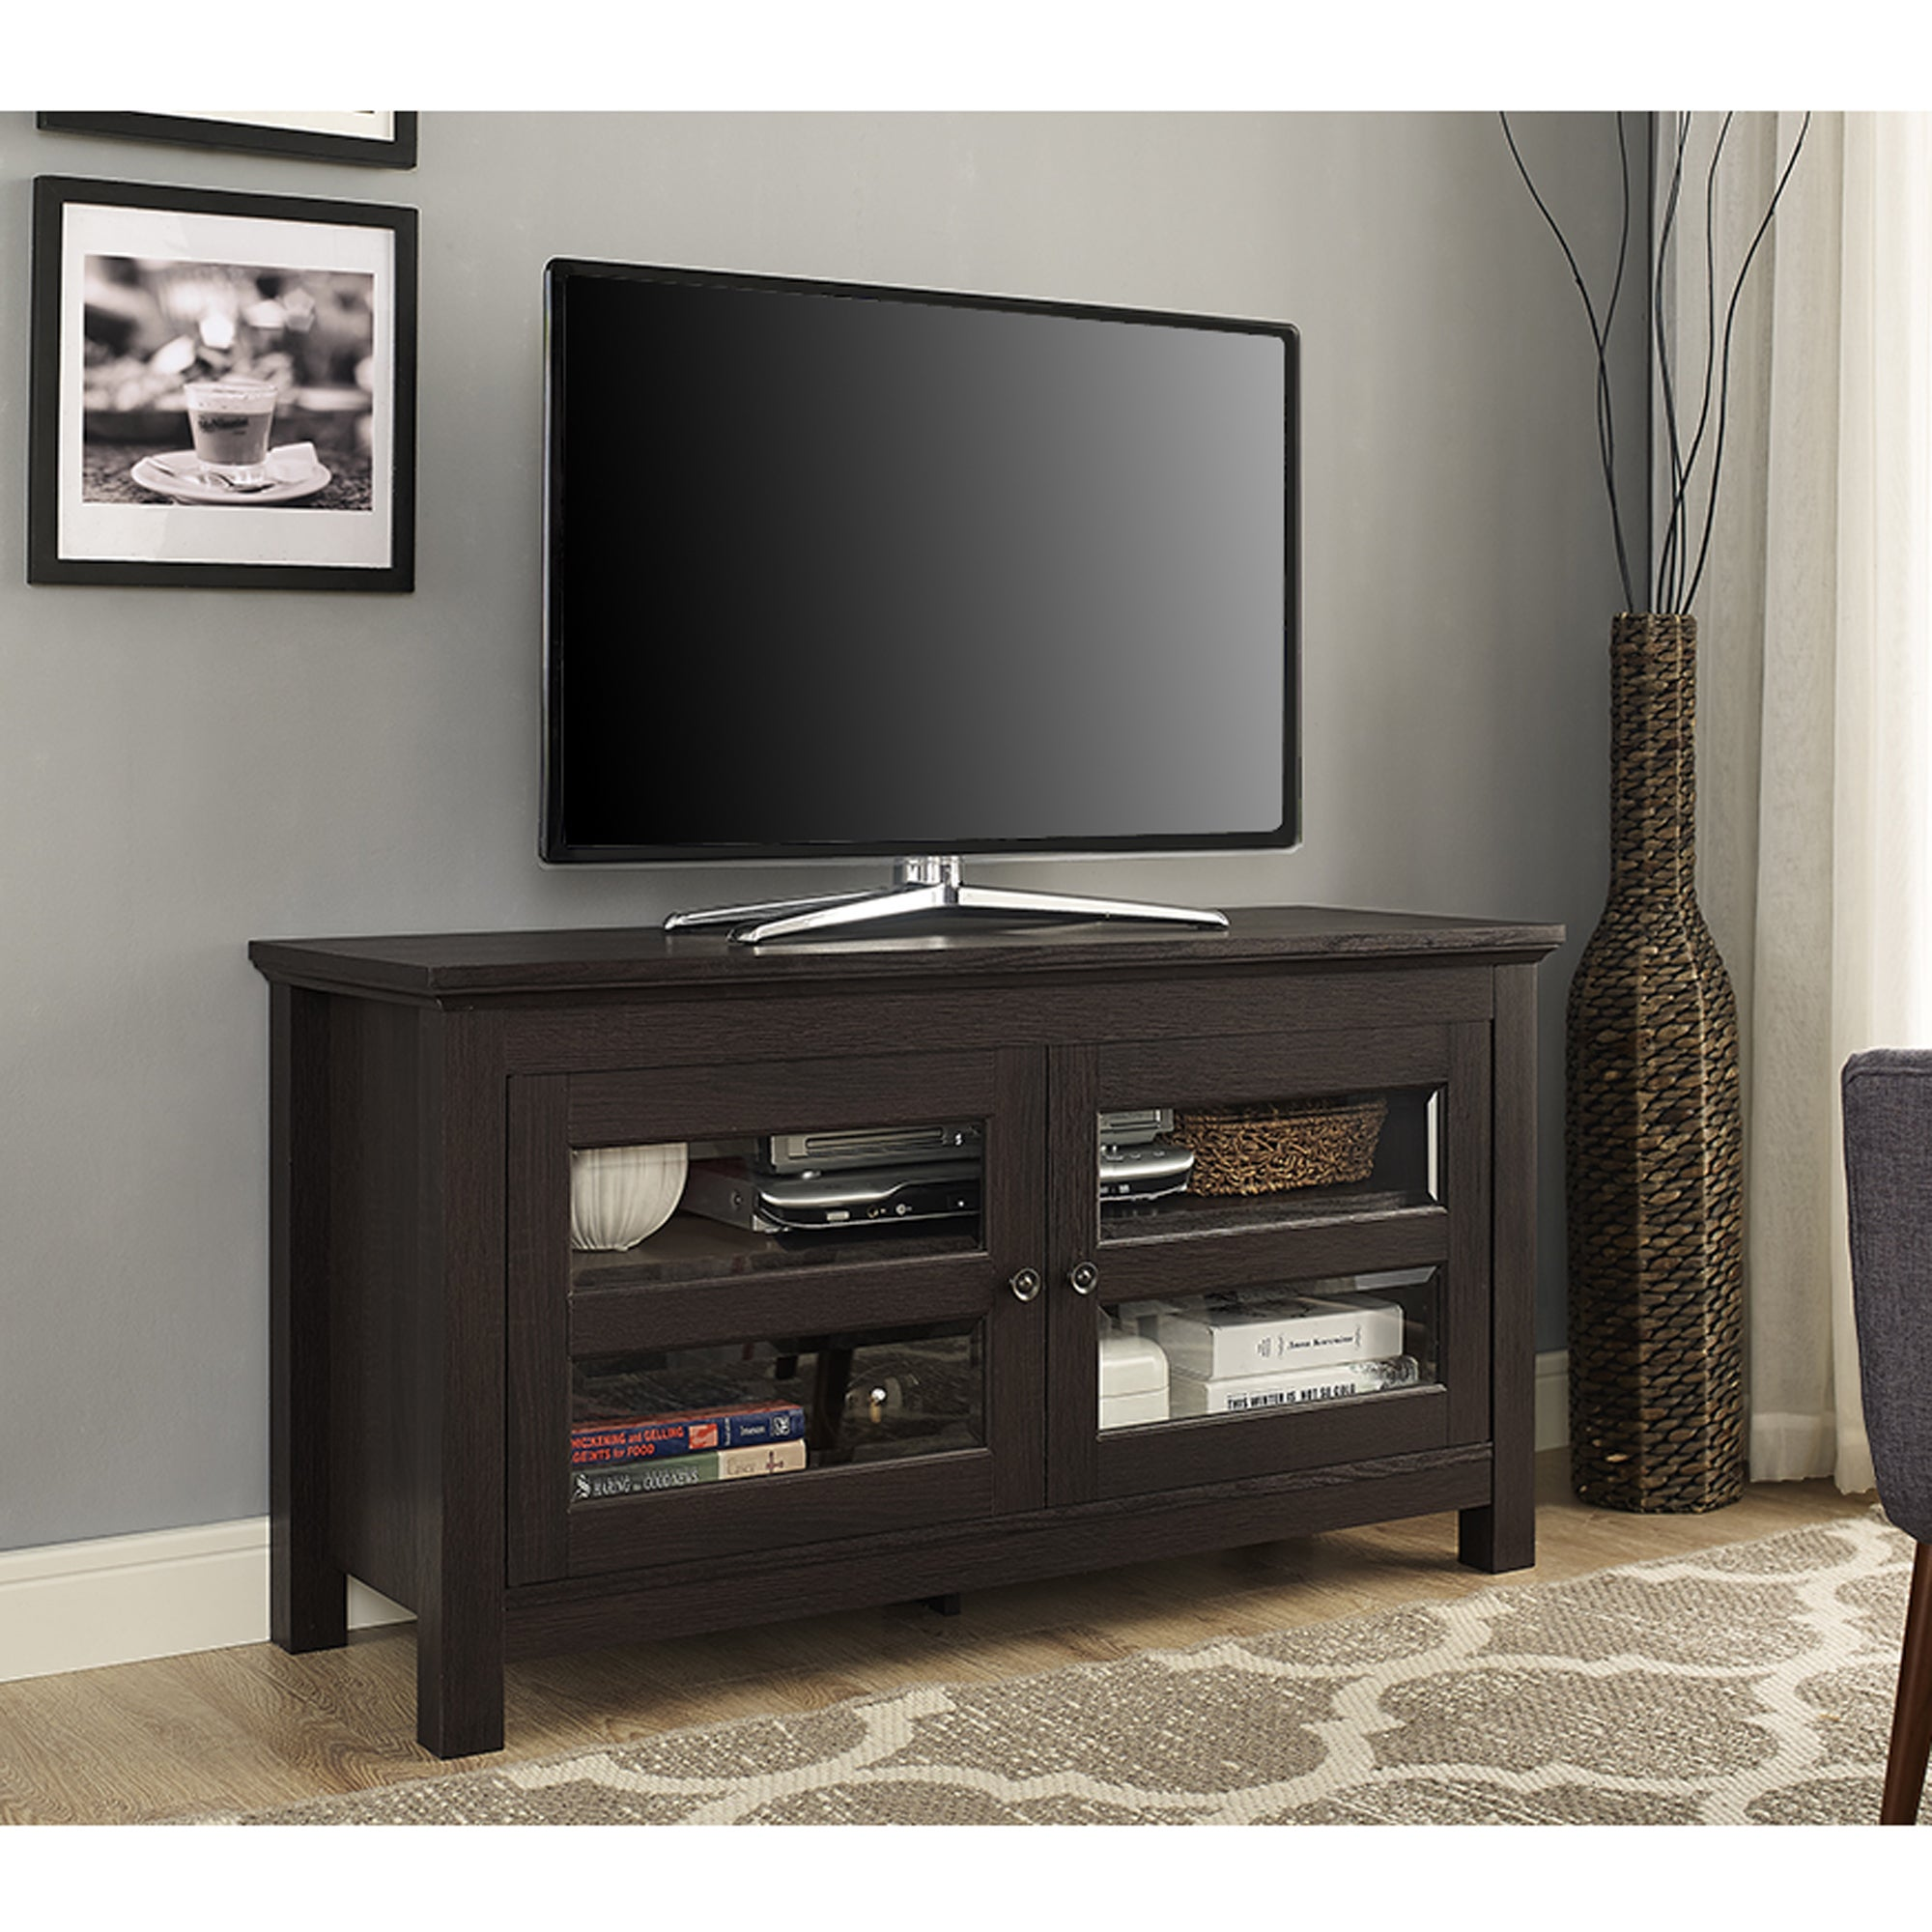 Shop Porch Den Hardy 44 Inch Espresso Wood Tv Stand Console With